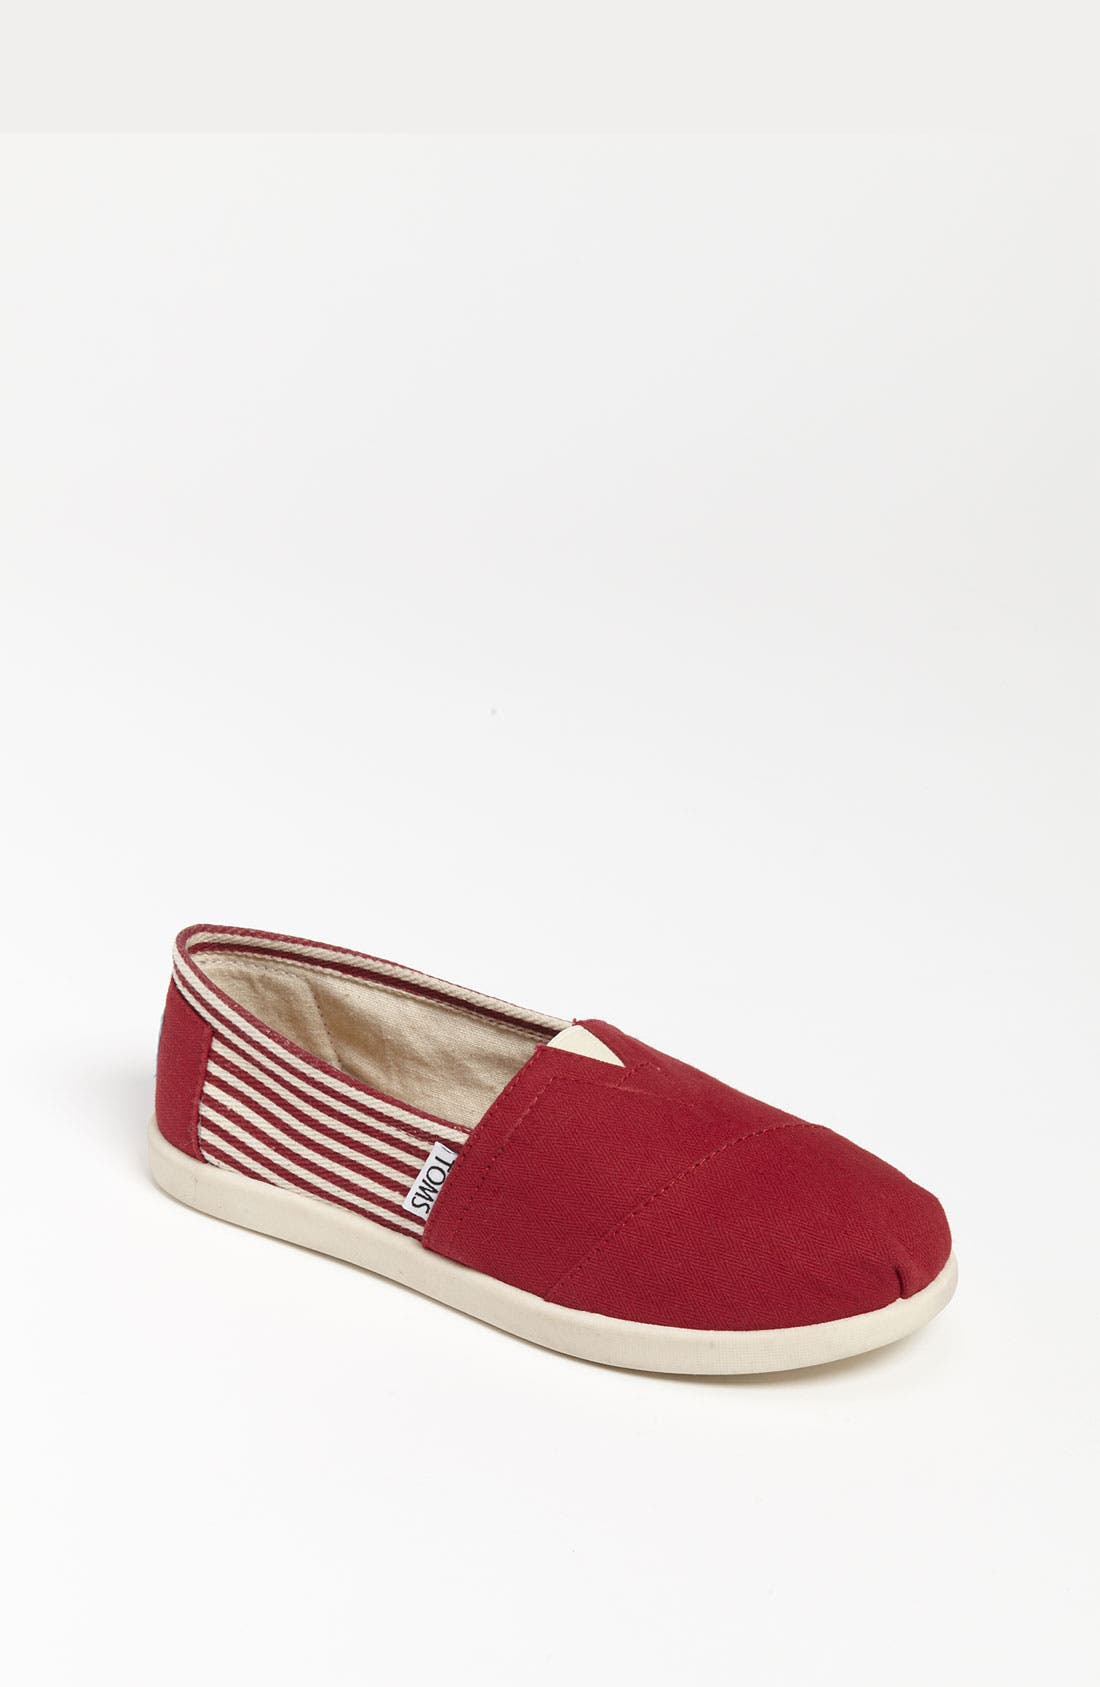 Alternate Image 1 Selected - TOMS 'Classic Youth - University' Canvas Slip-On (Toddler, Little Kid & Big Kid) (Nordstrom Exclusive)